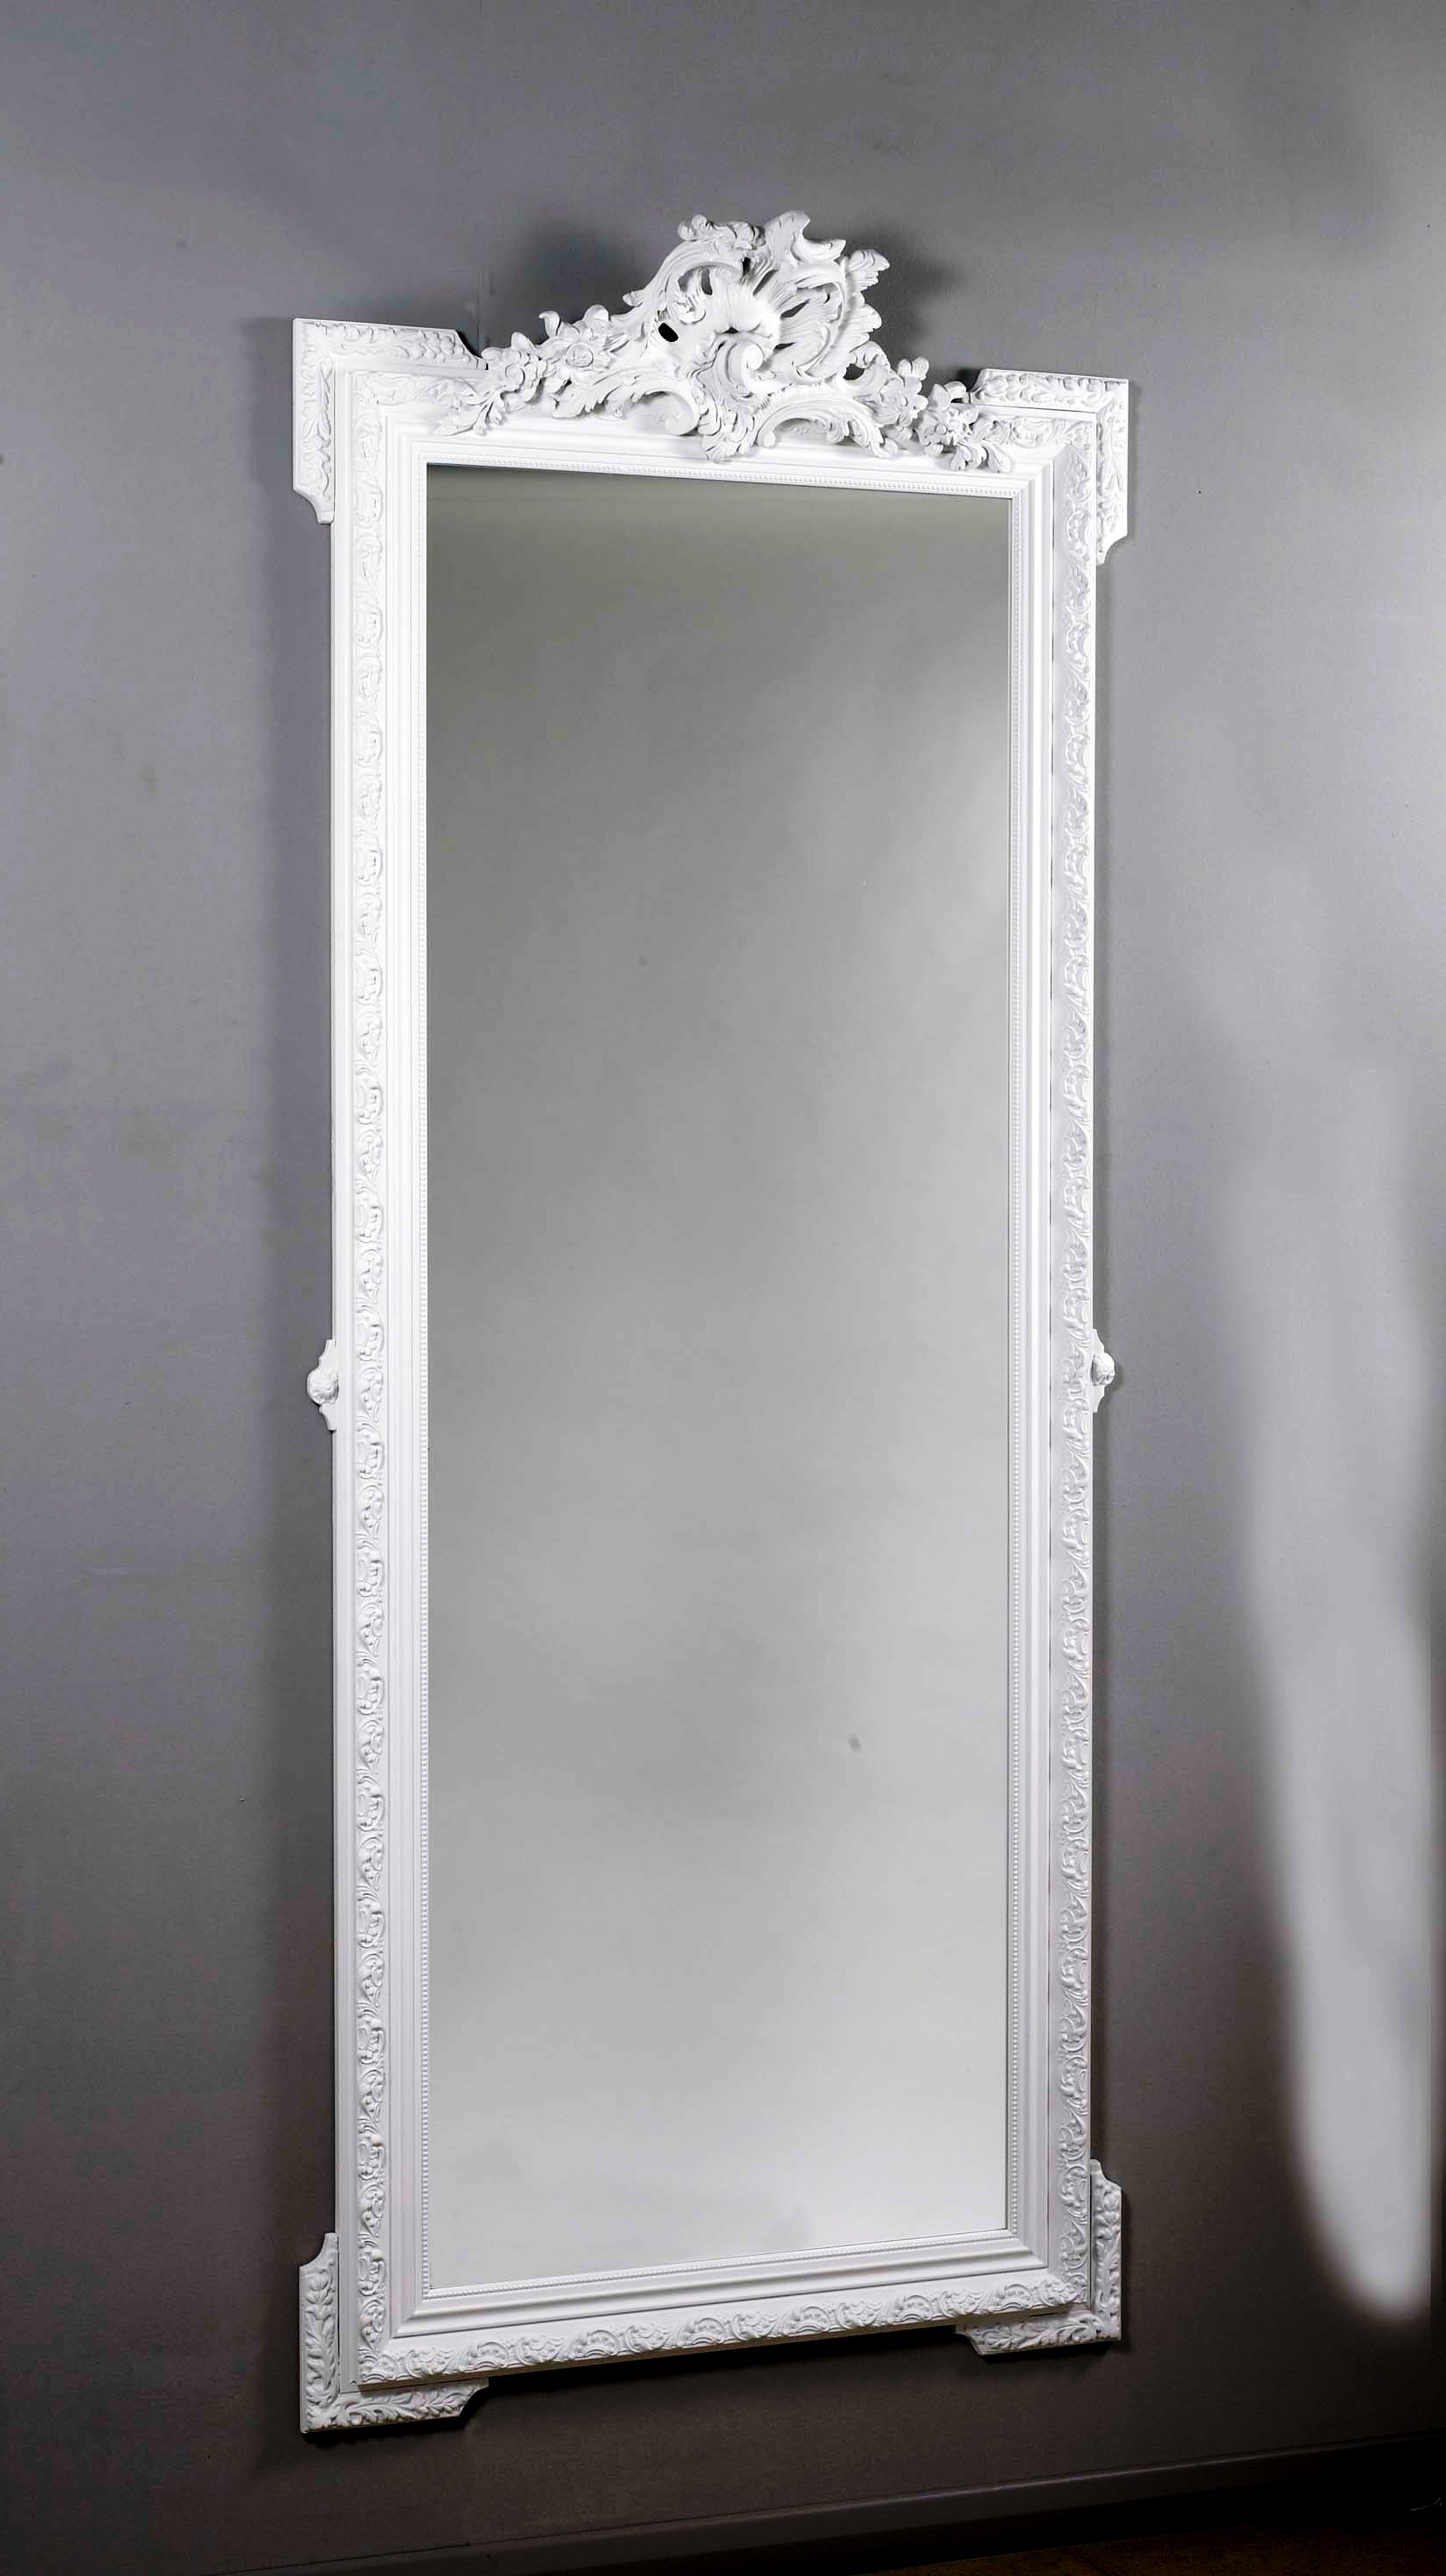 Romantica Grande White Wall Mirror Inside Well Known Full Length Decorative Wall Mirrors (Gallery 5 of 20)